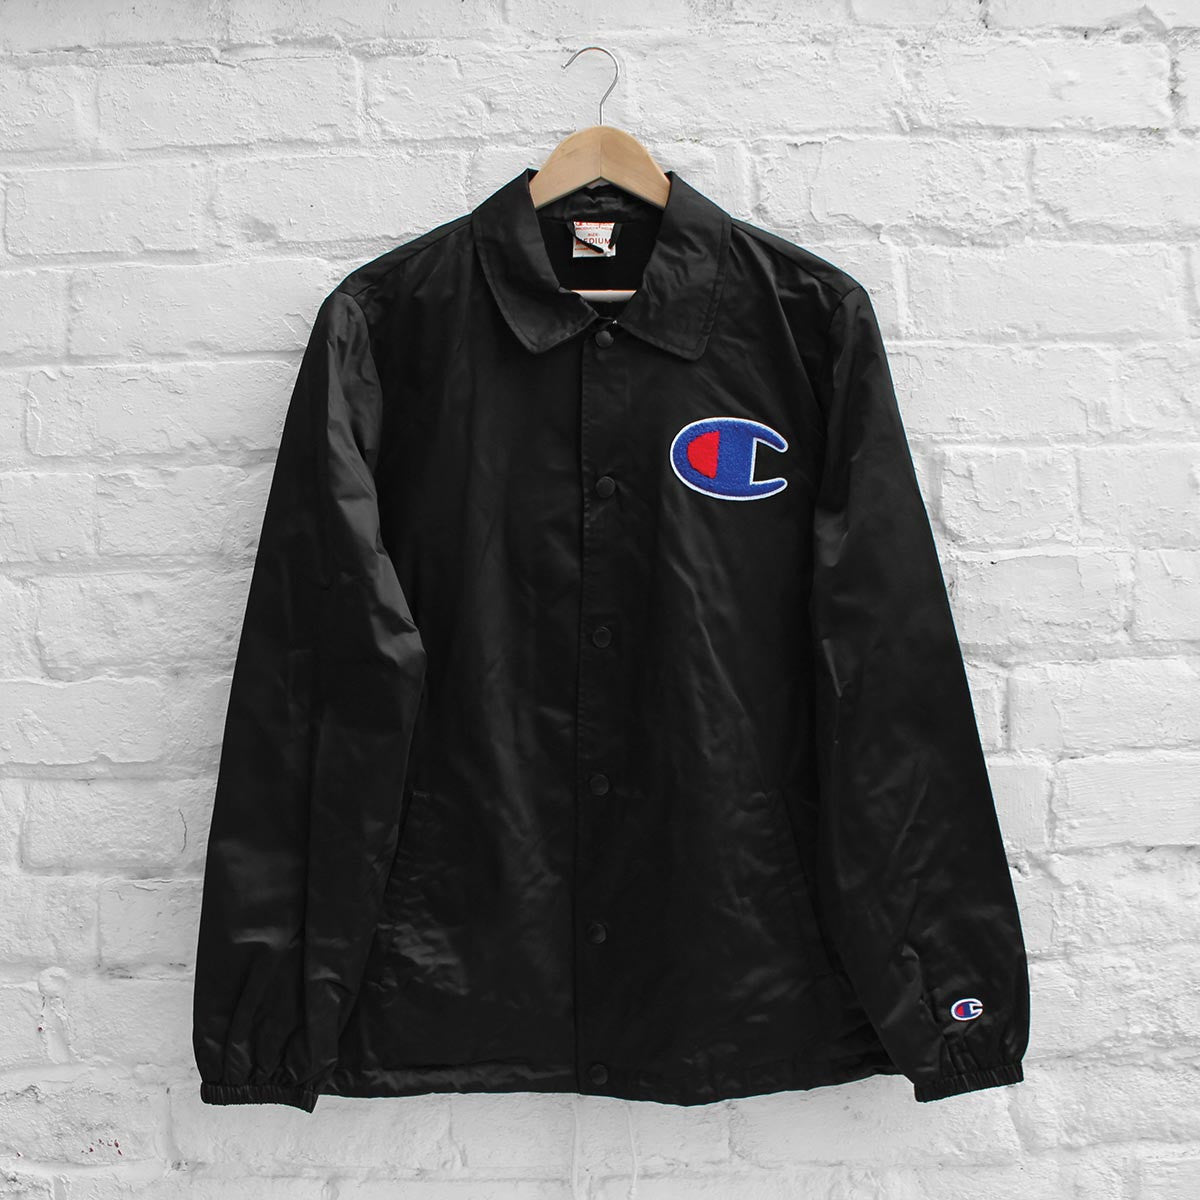 Champion Coach Jacket Black